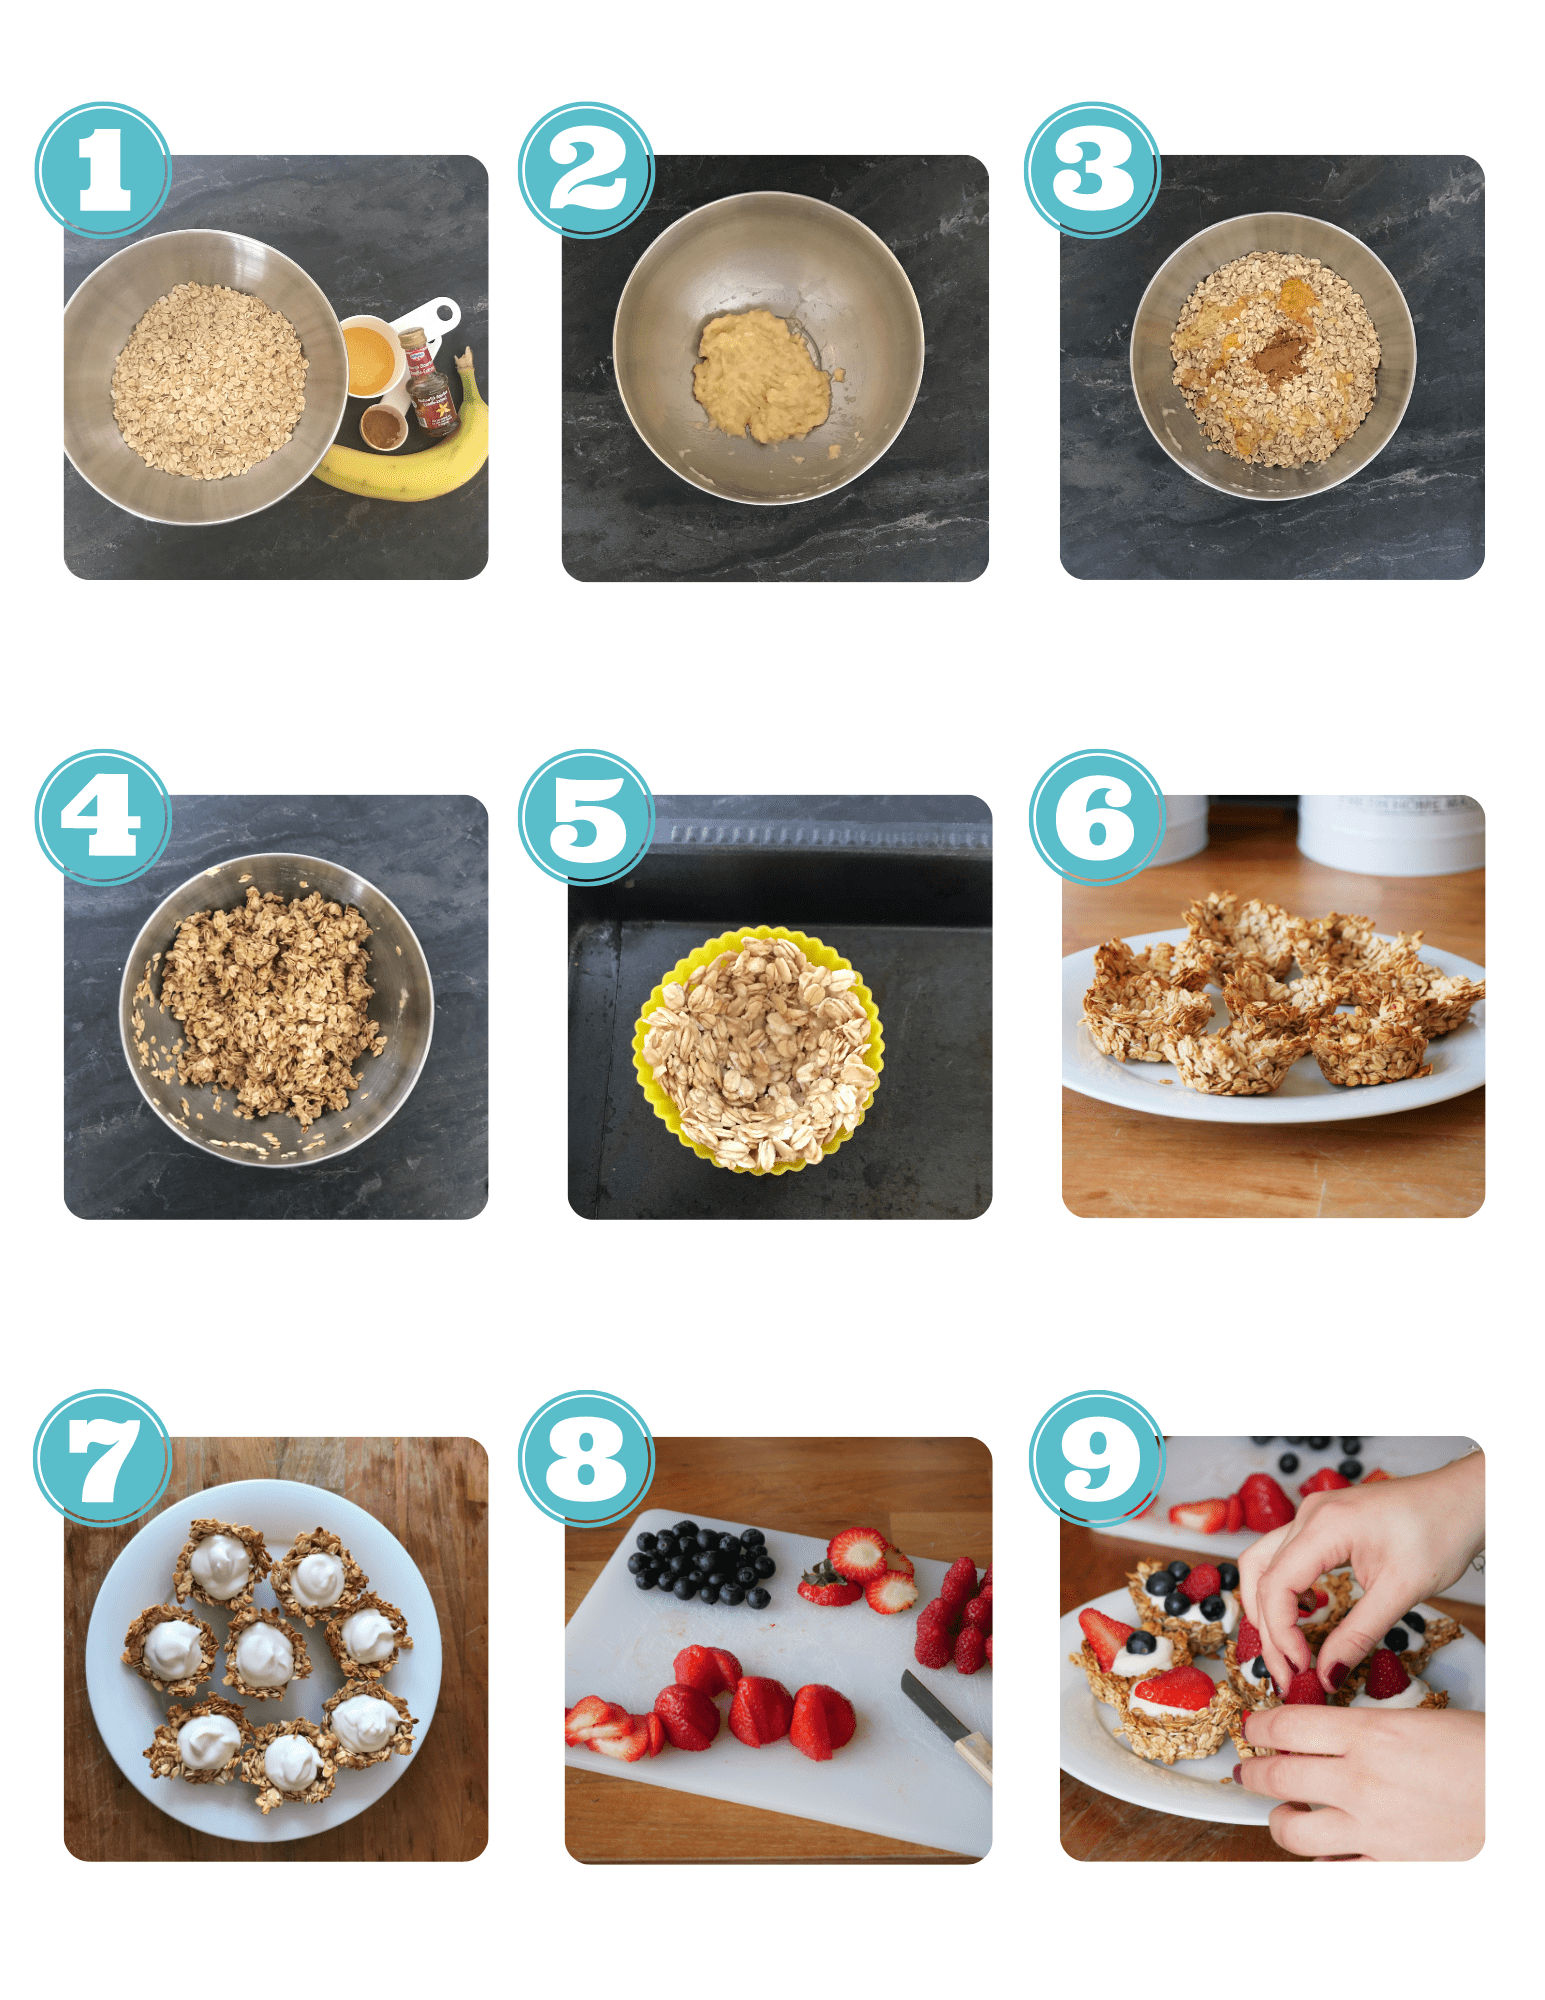 Granola Cups step by step